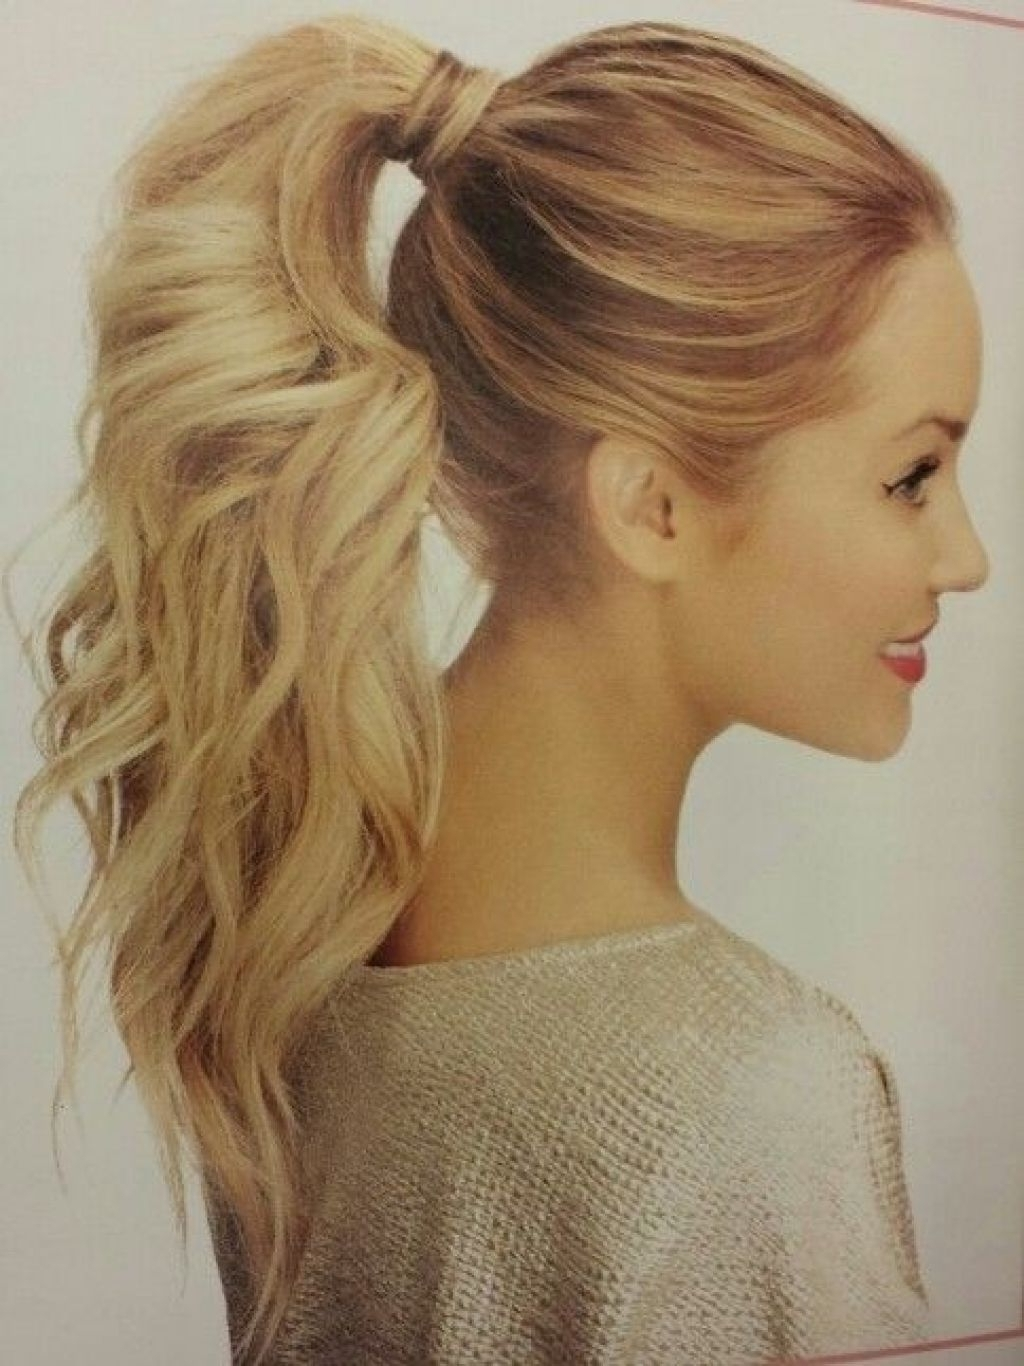 Current High Ponytail Hairstyles In High Pony Tail Hairstyle Braided Ponytail Hairstyles To Slay In (View 8 of 20)